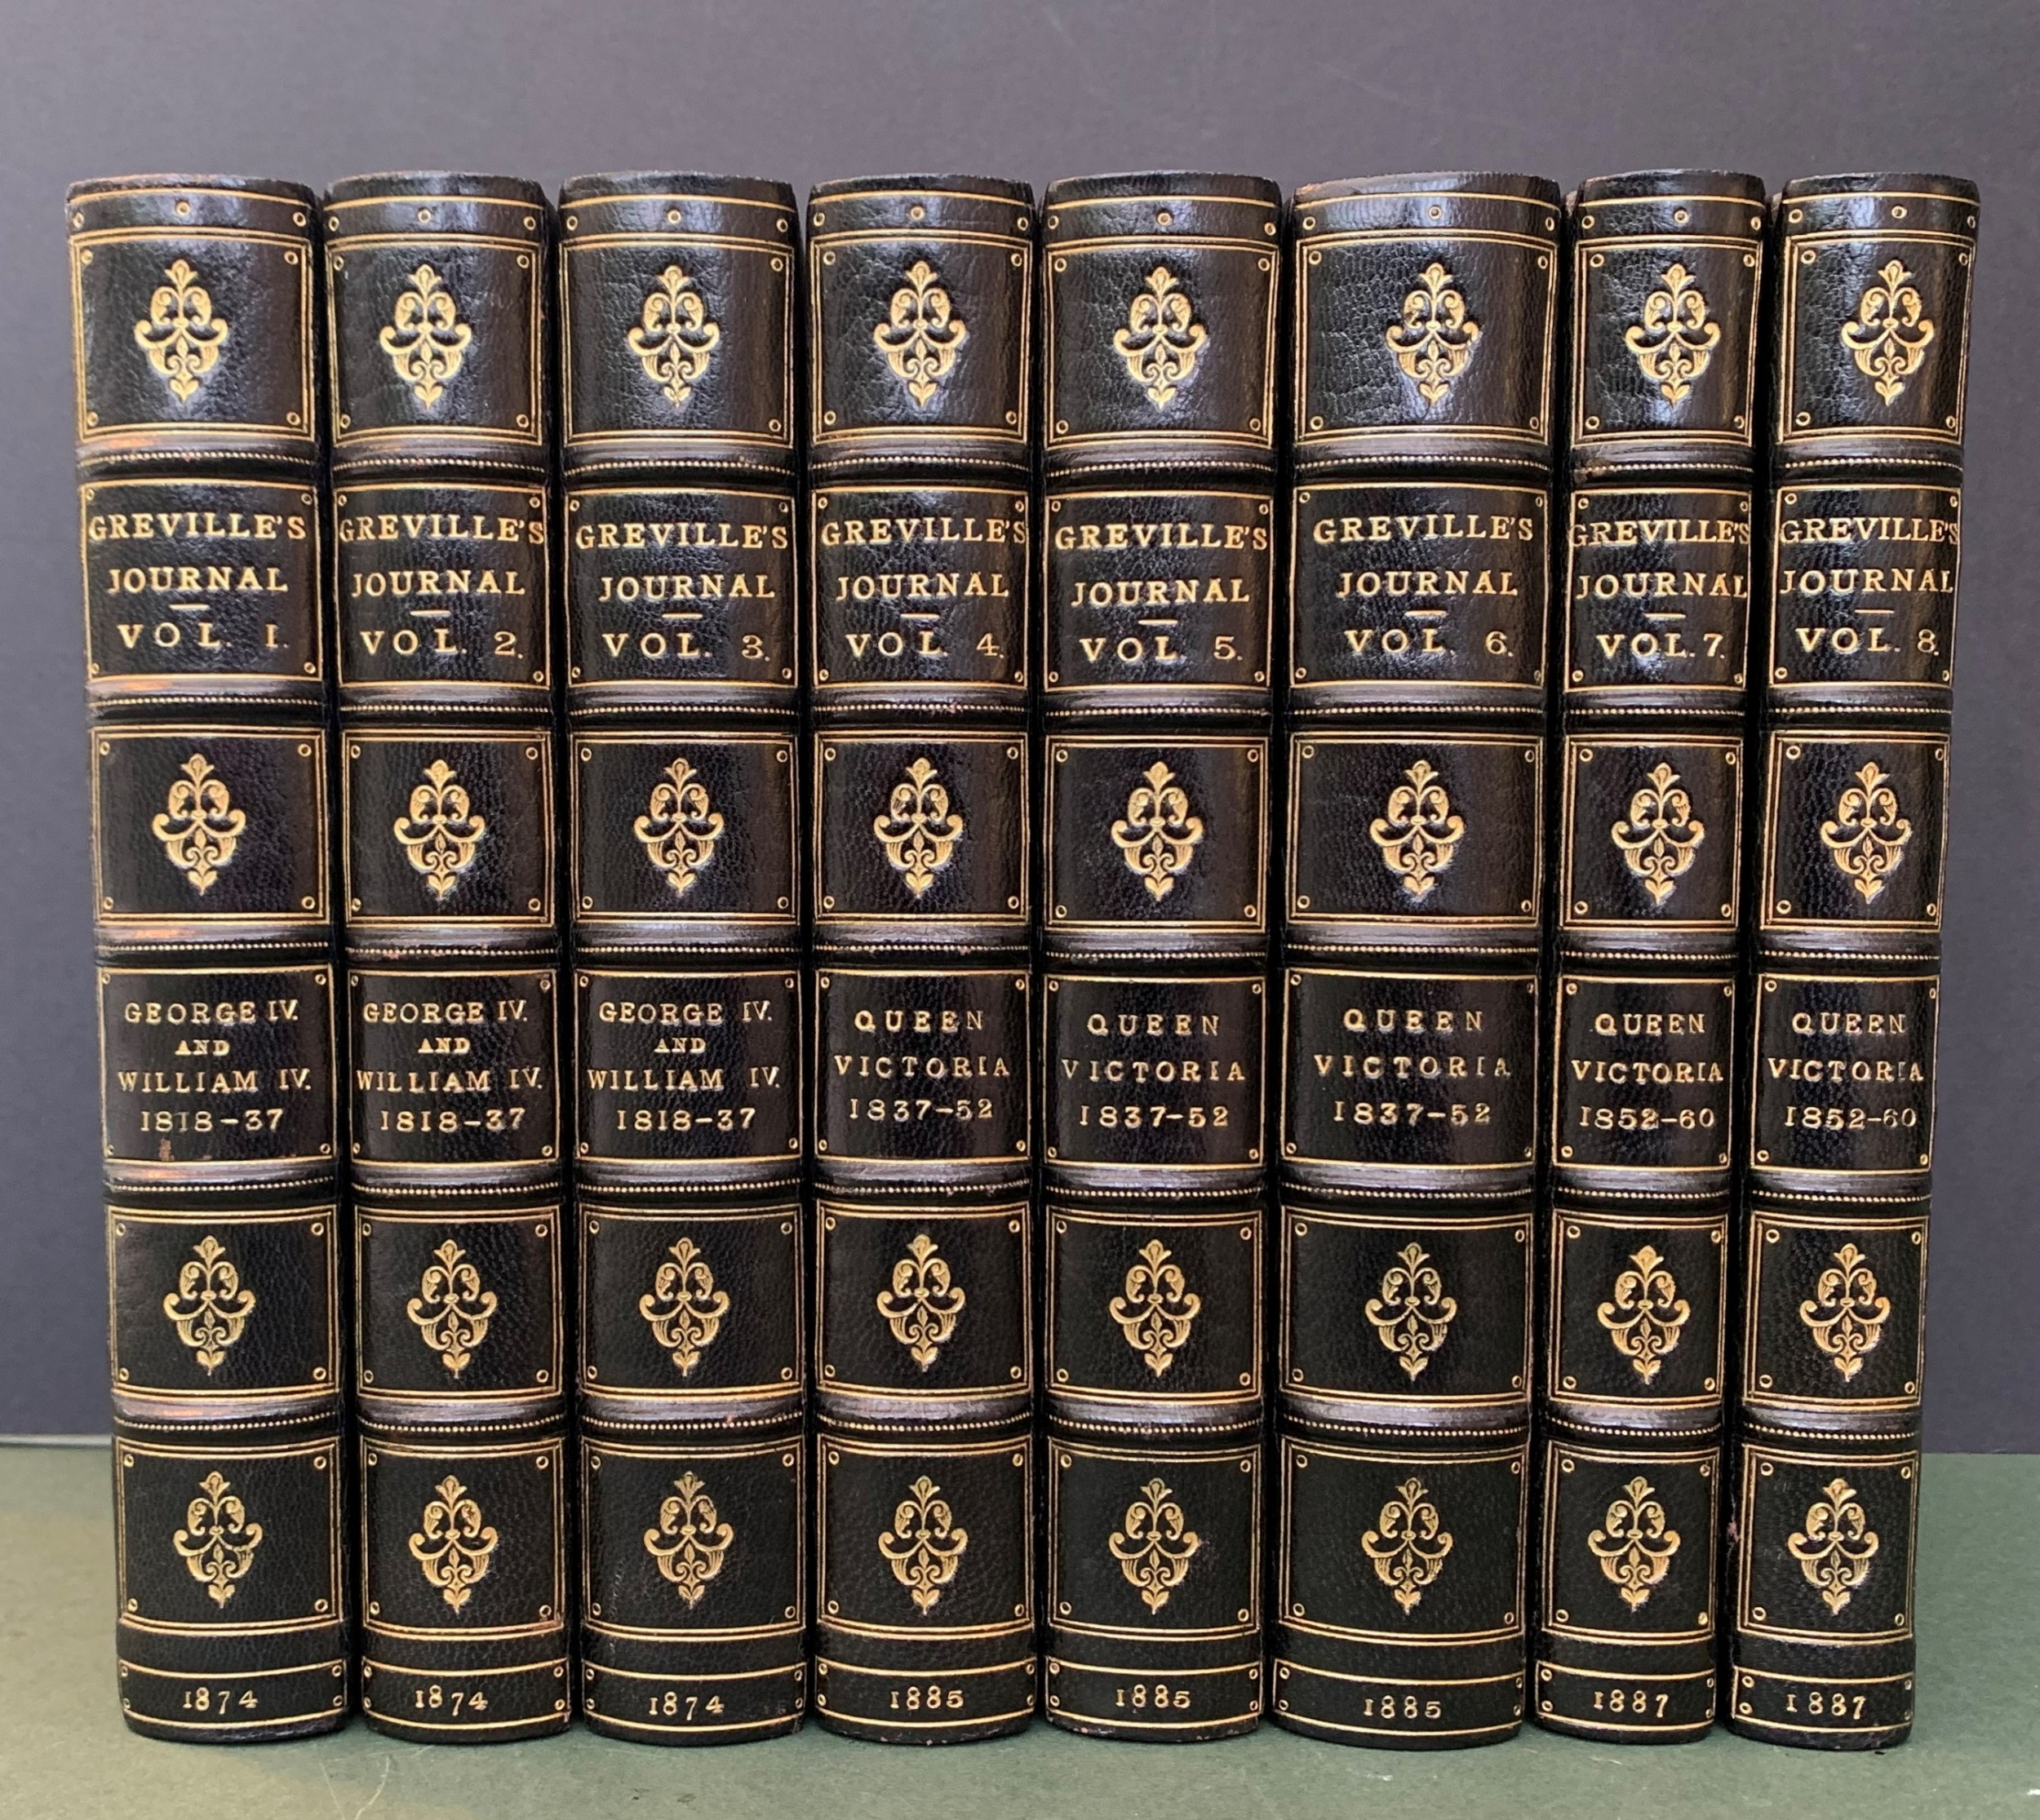 superb set of the greville memoirs in 8 first edition books